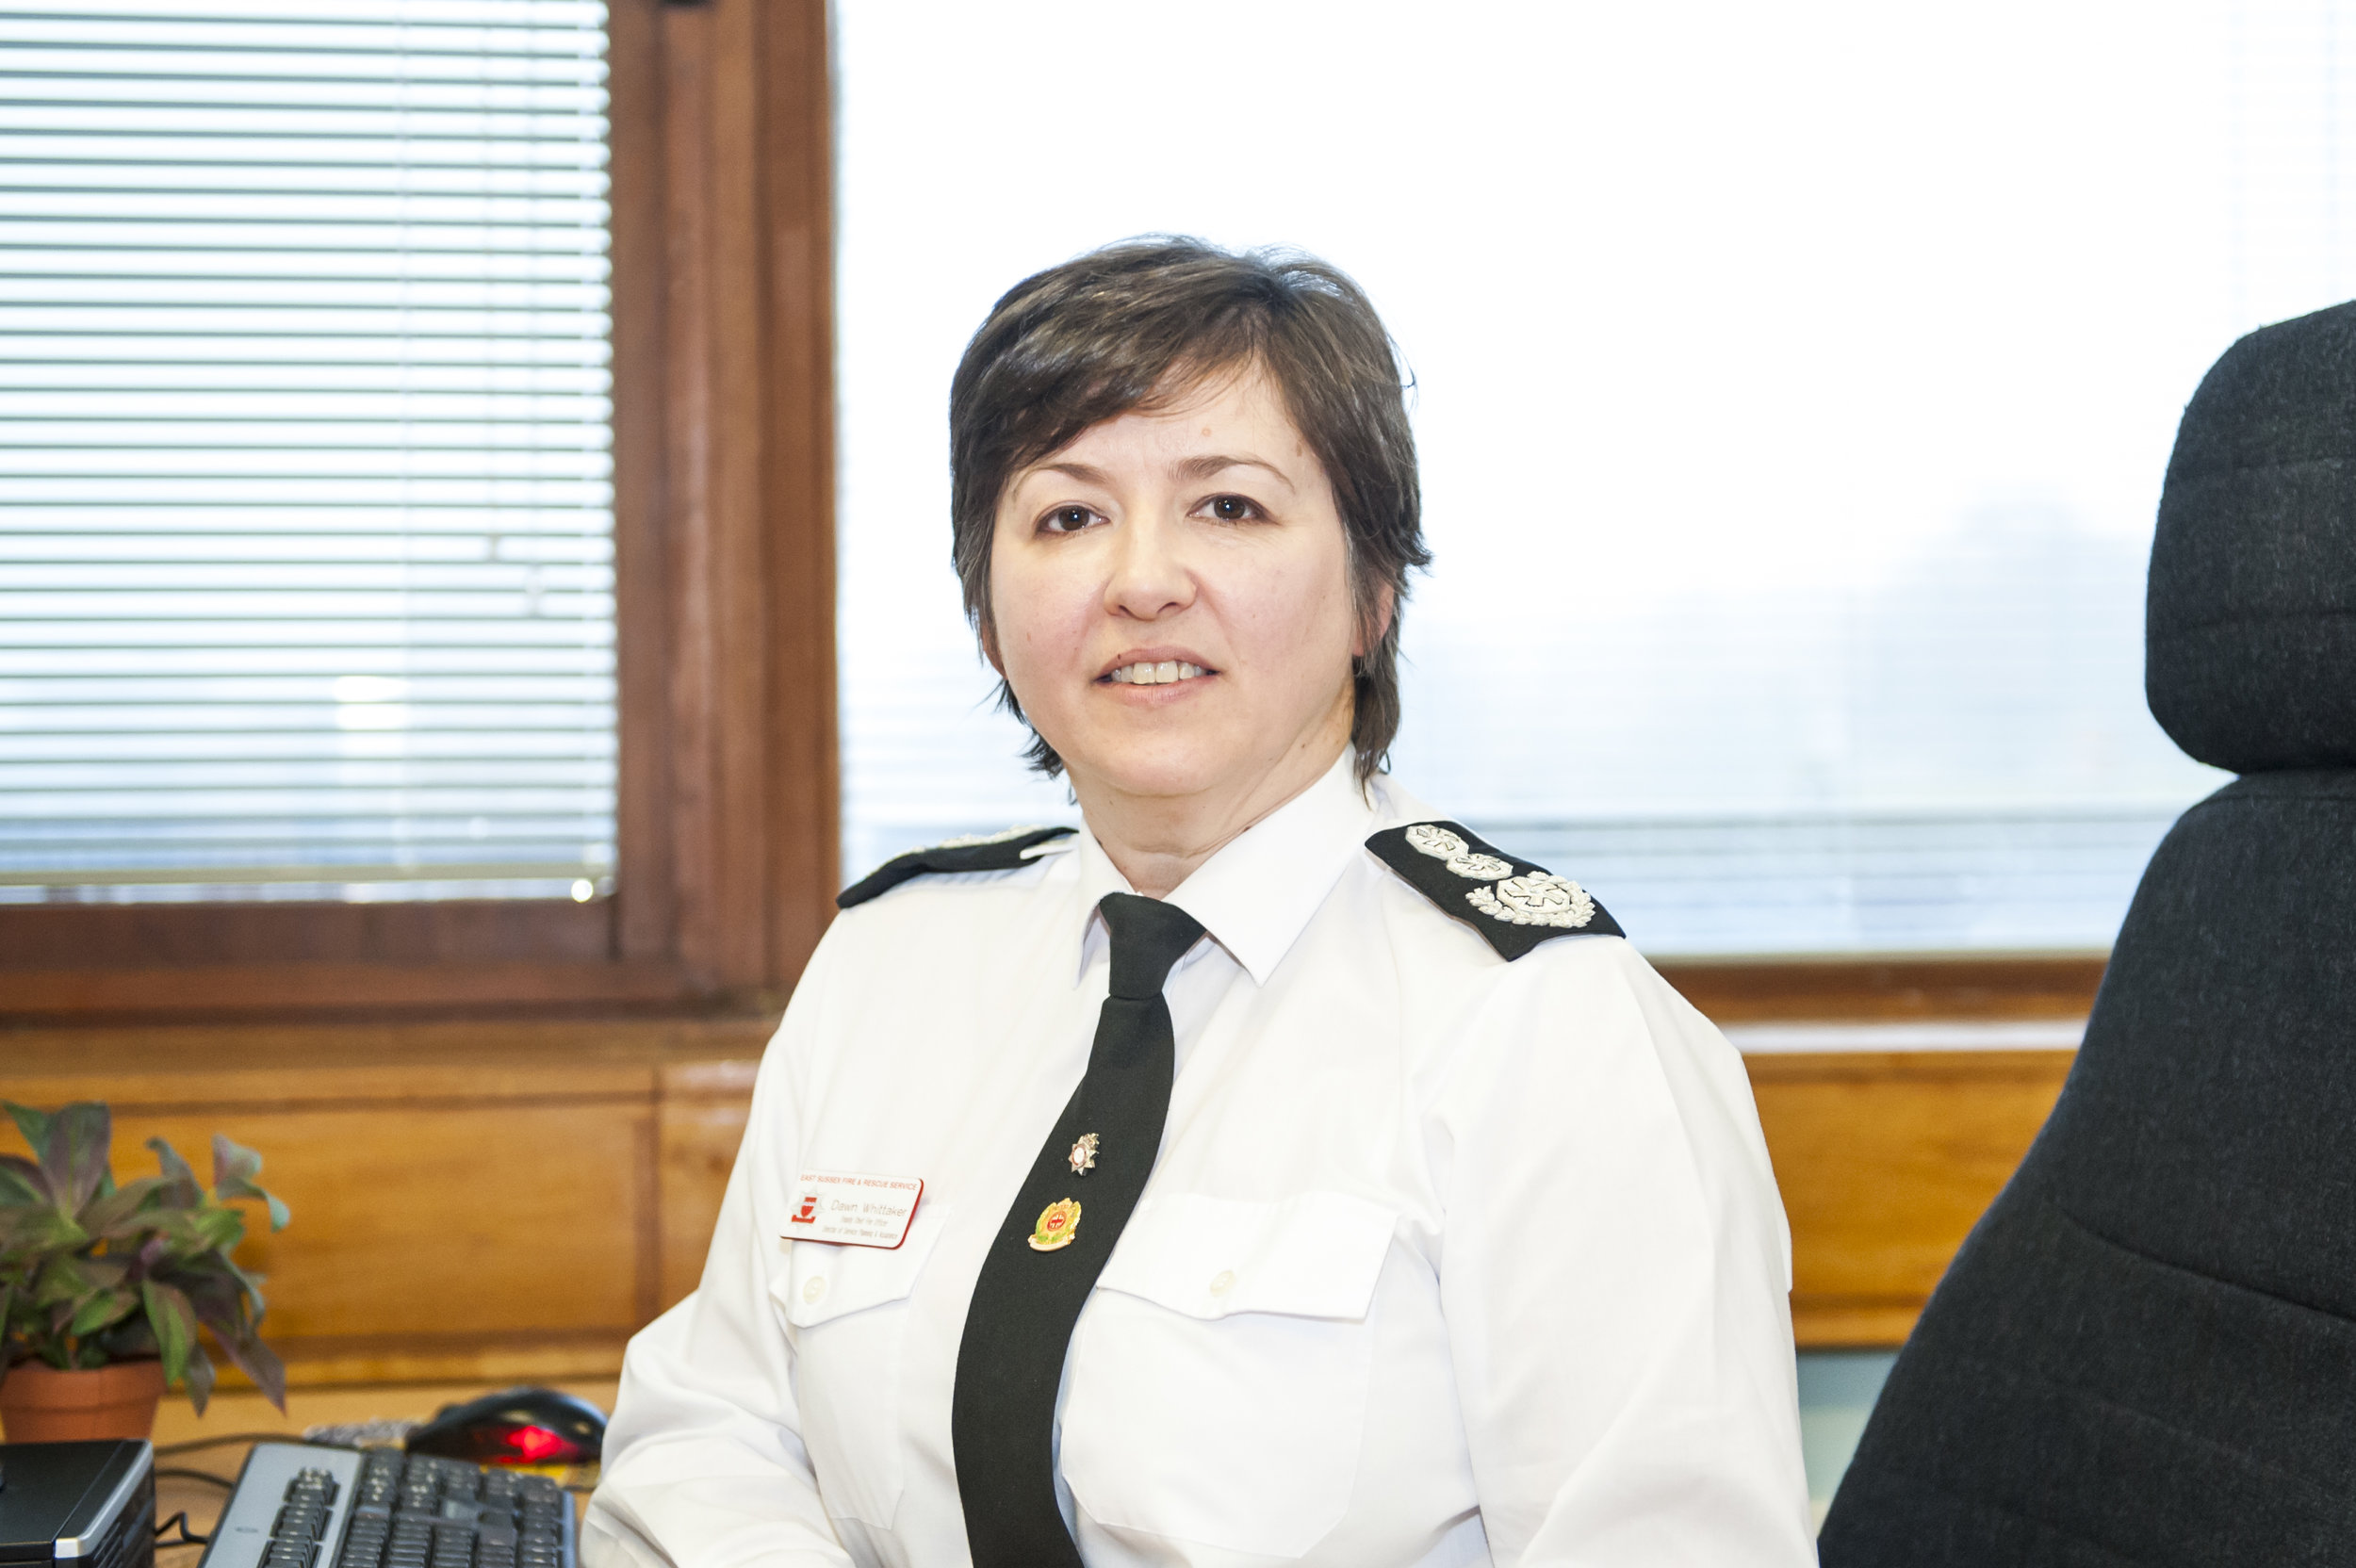 Dawn Whitaker, Chief Fire Officer for East Sussex Fire and Rescue, is urging emergency services organisations to ensure they submit nominations for the APD Control Room Awards.